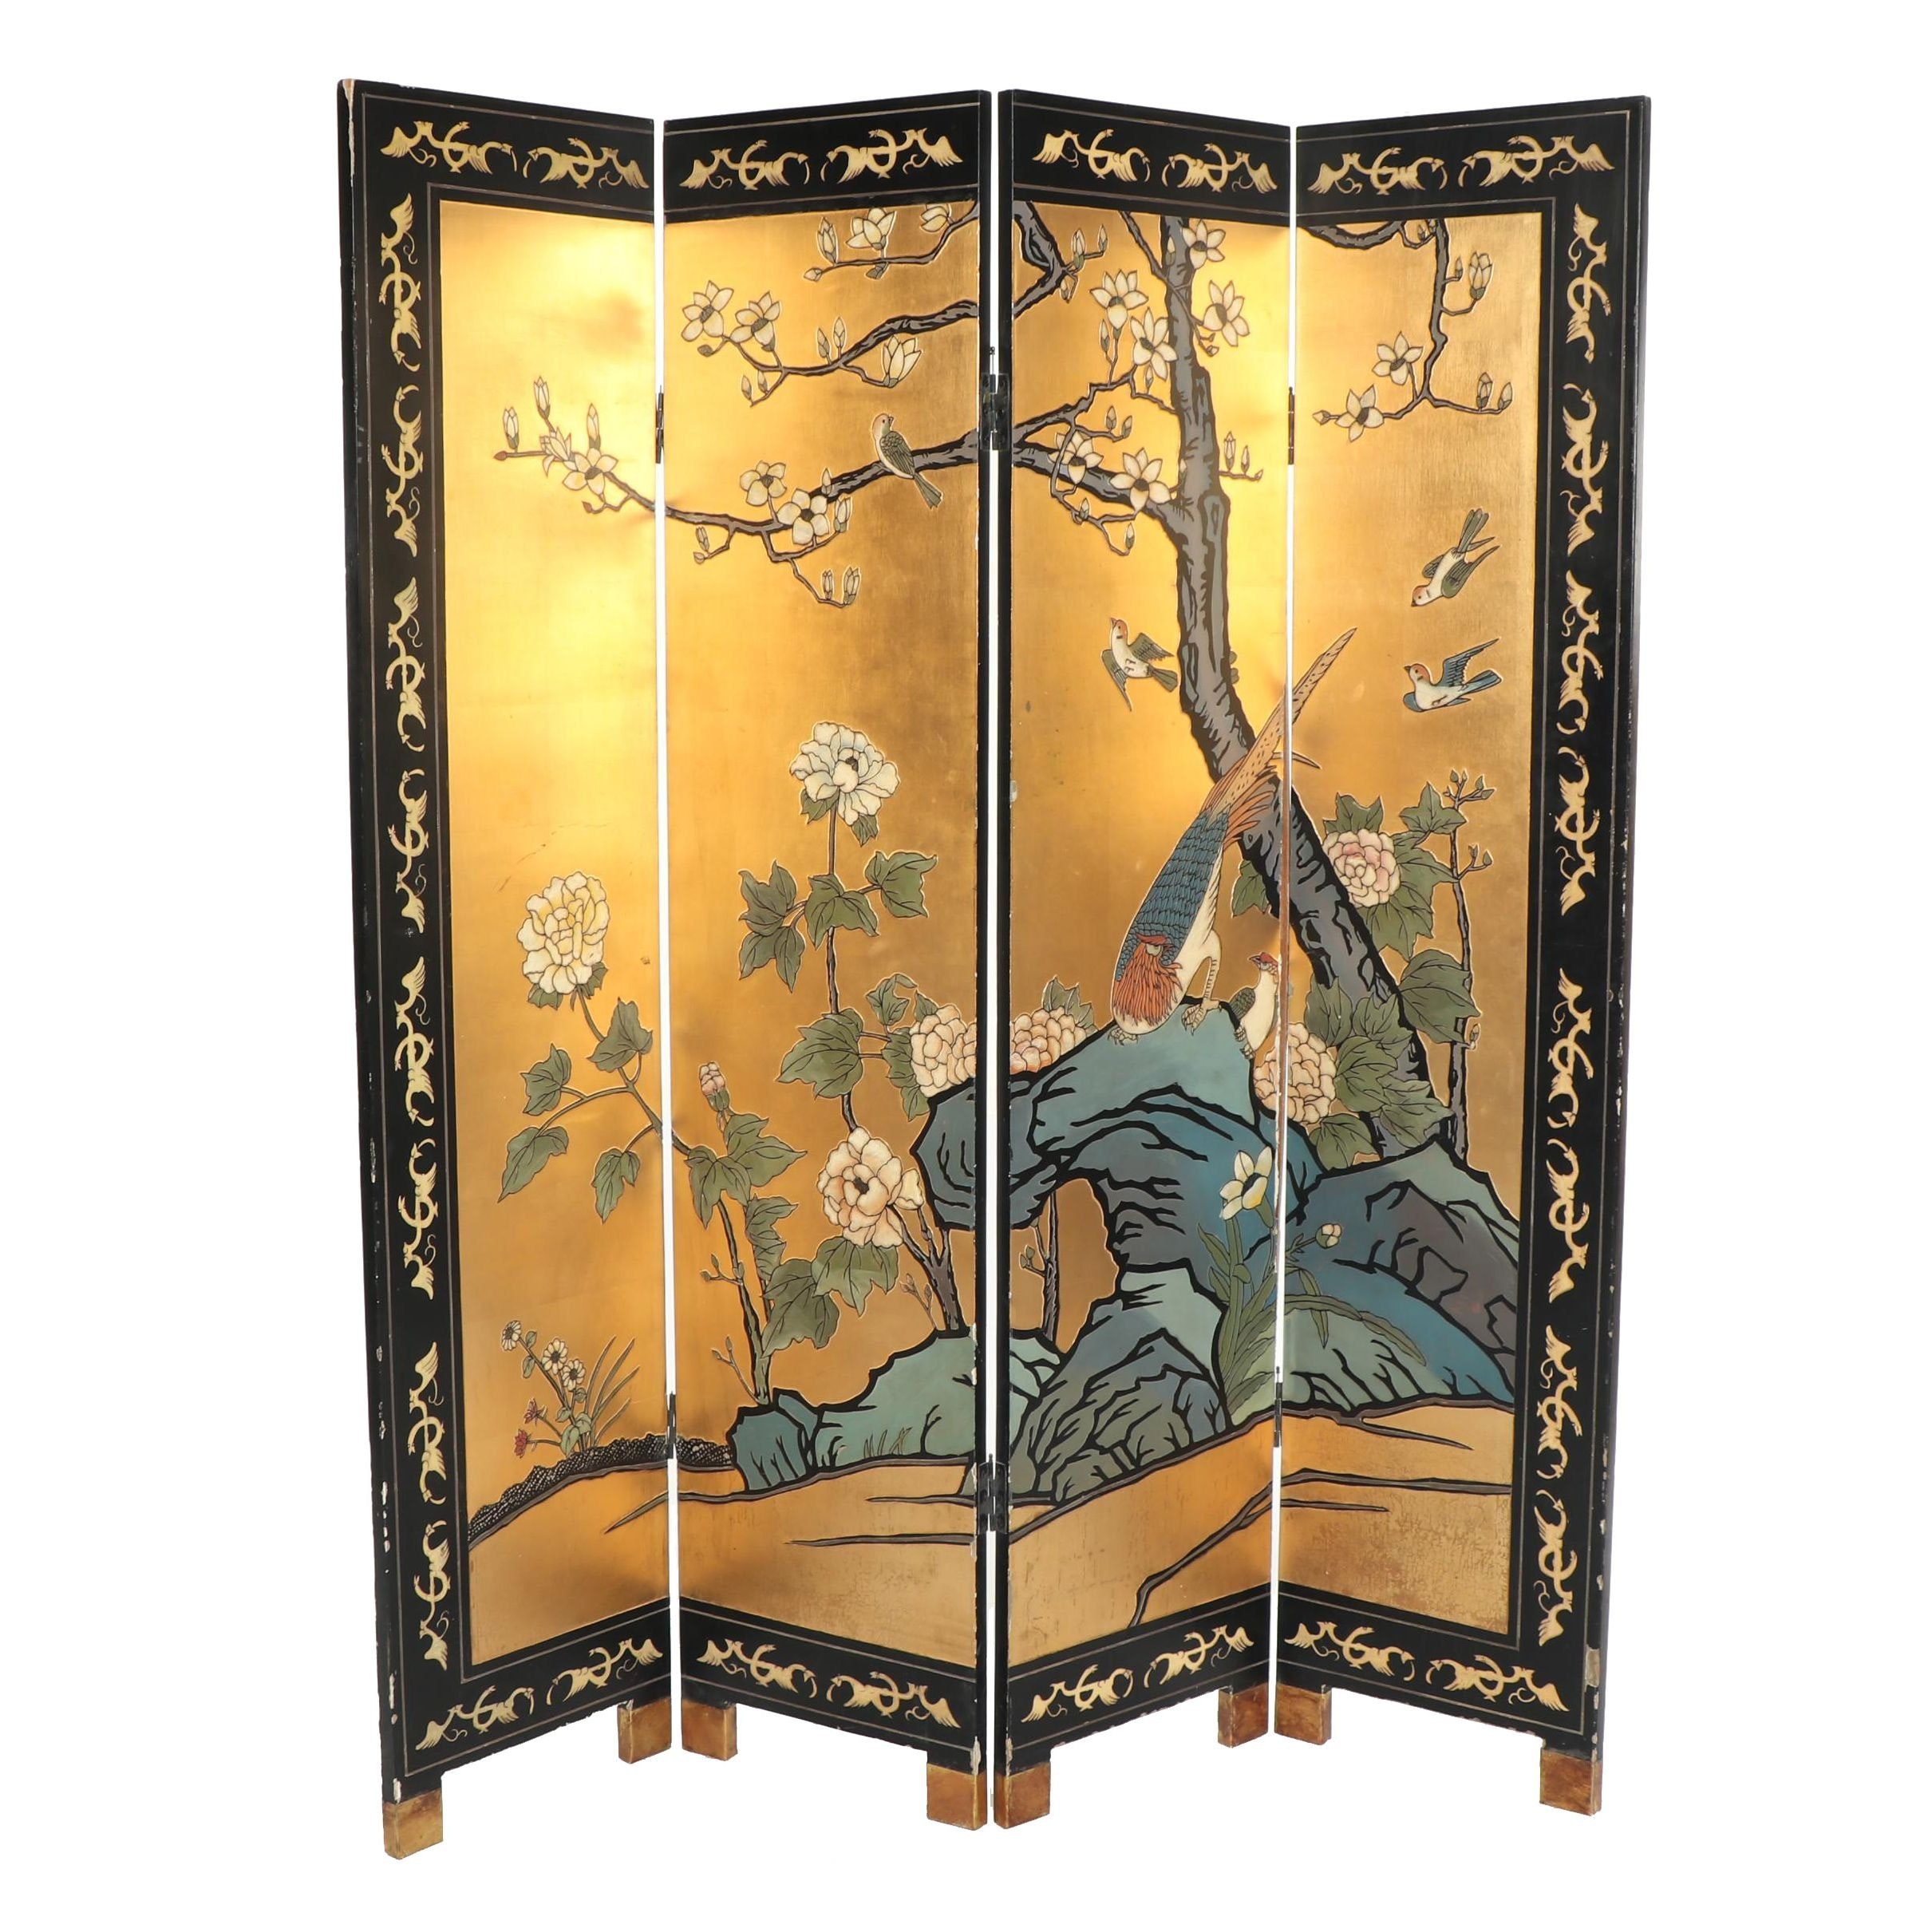 4 Panel Asian Screen with Floral Decor